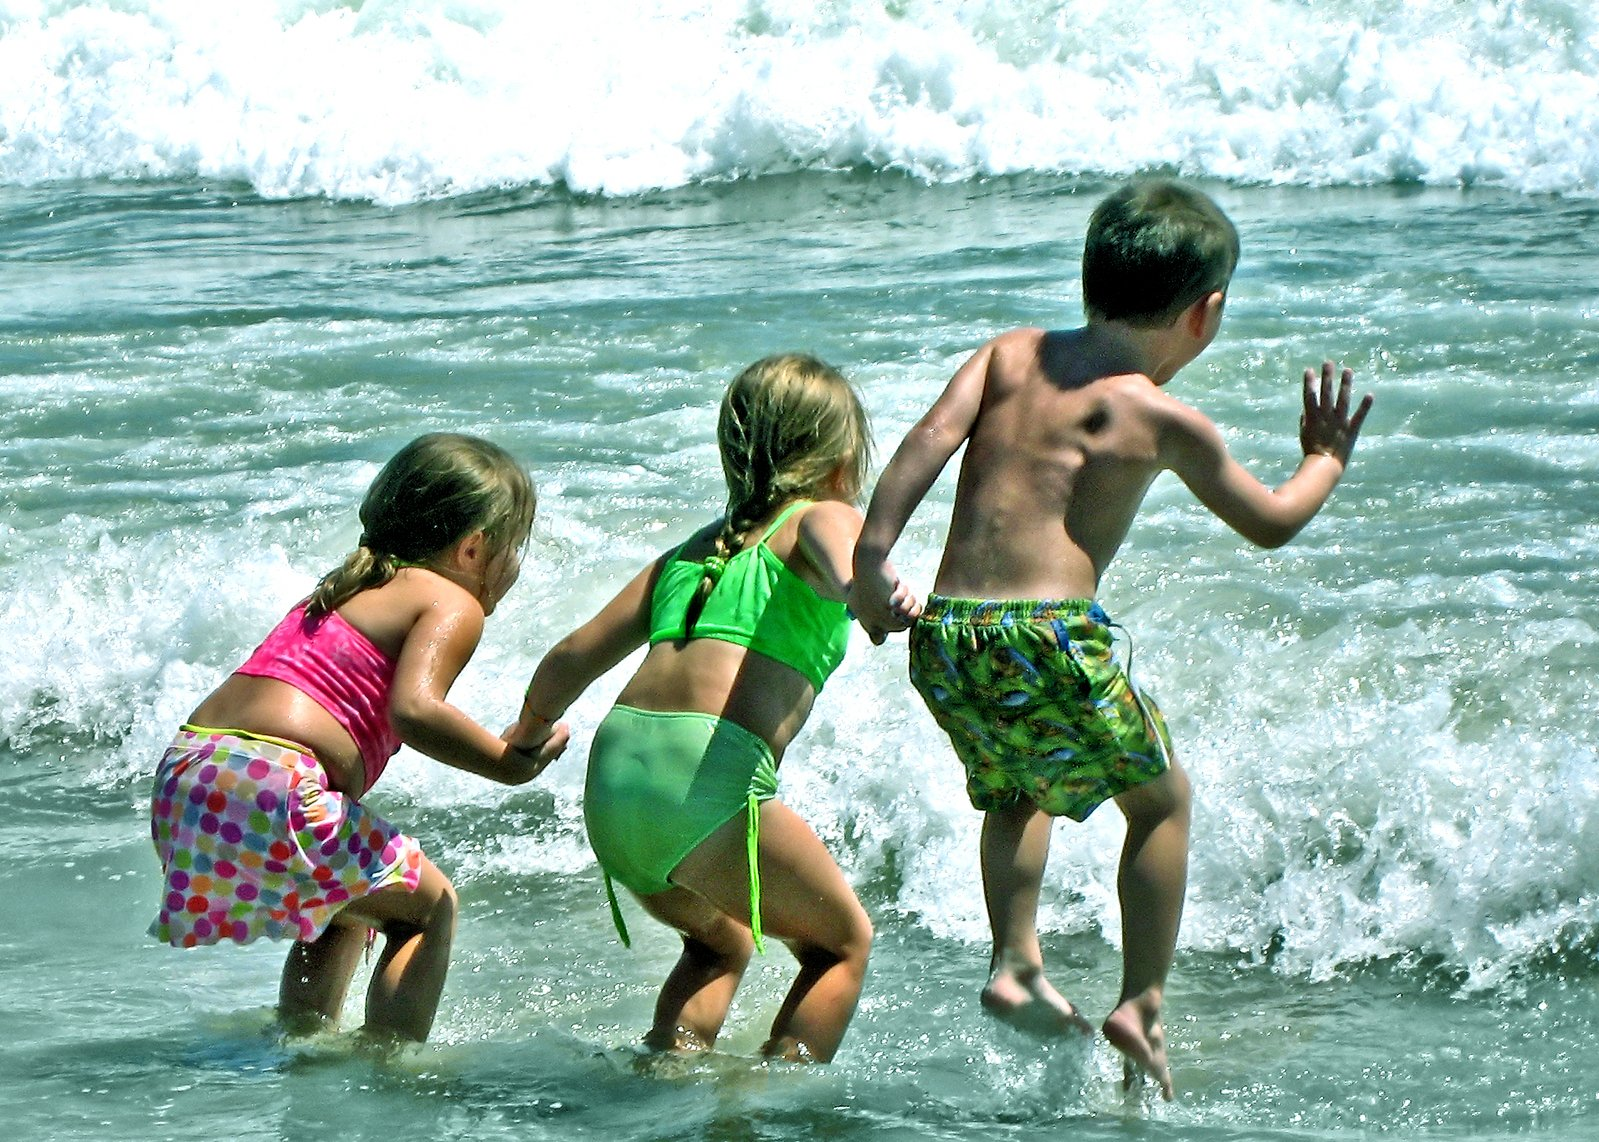 Wave and kids